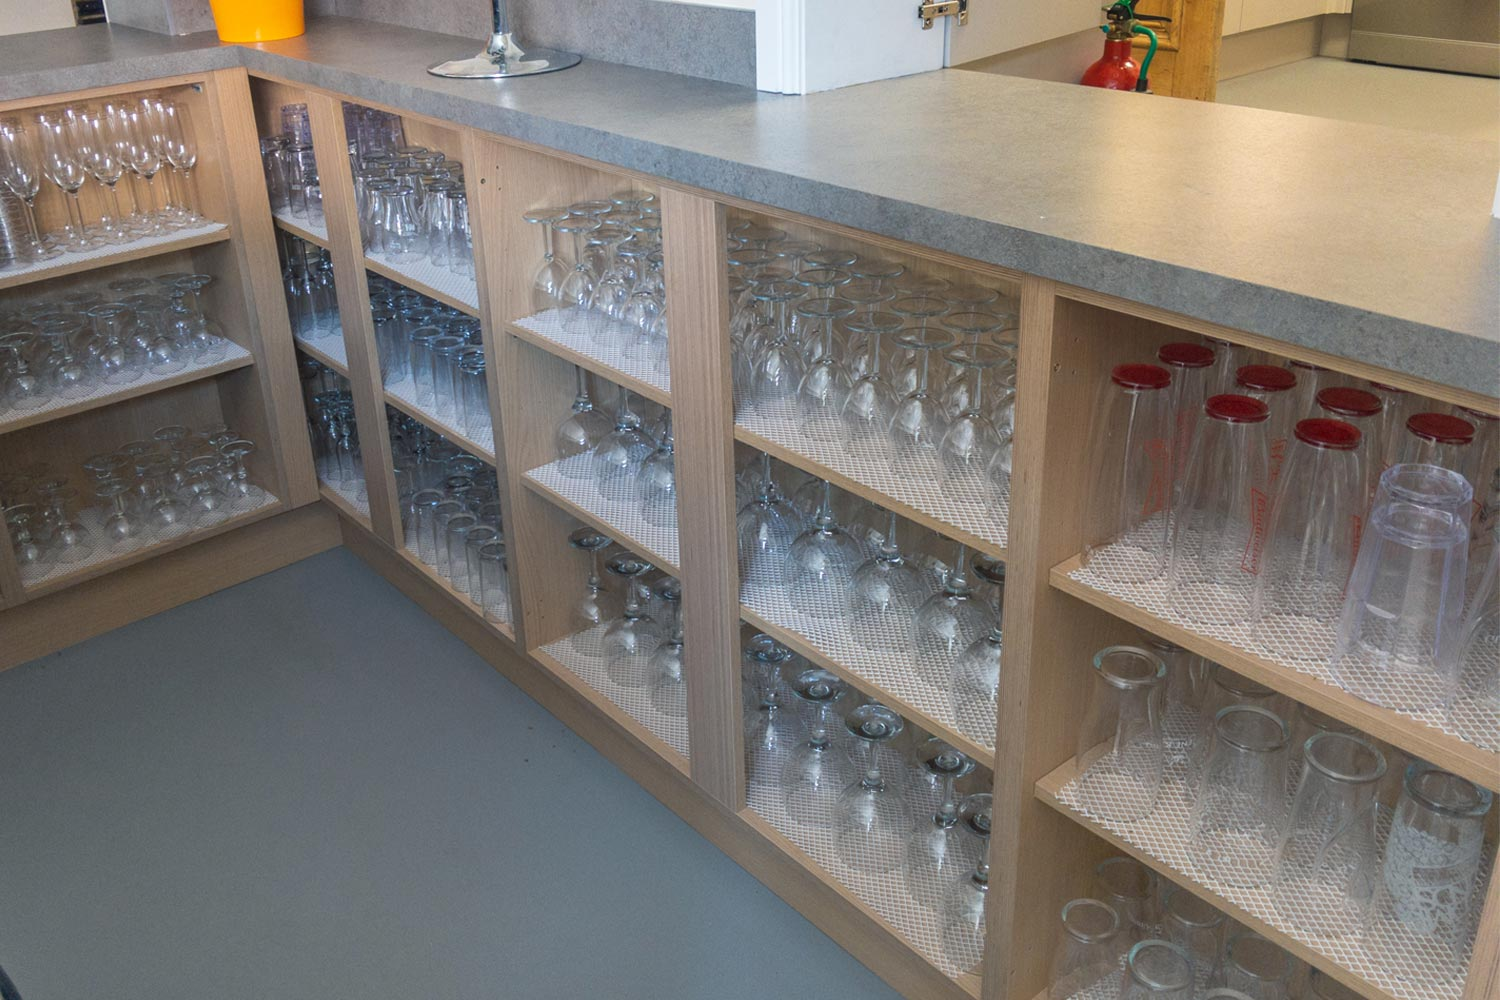 Bar area with glasses on shelves